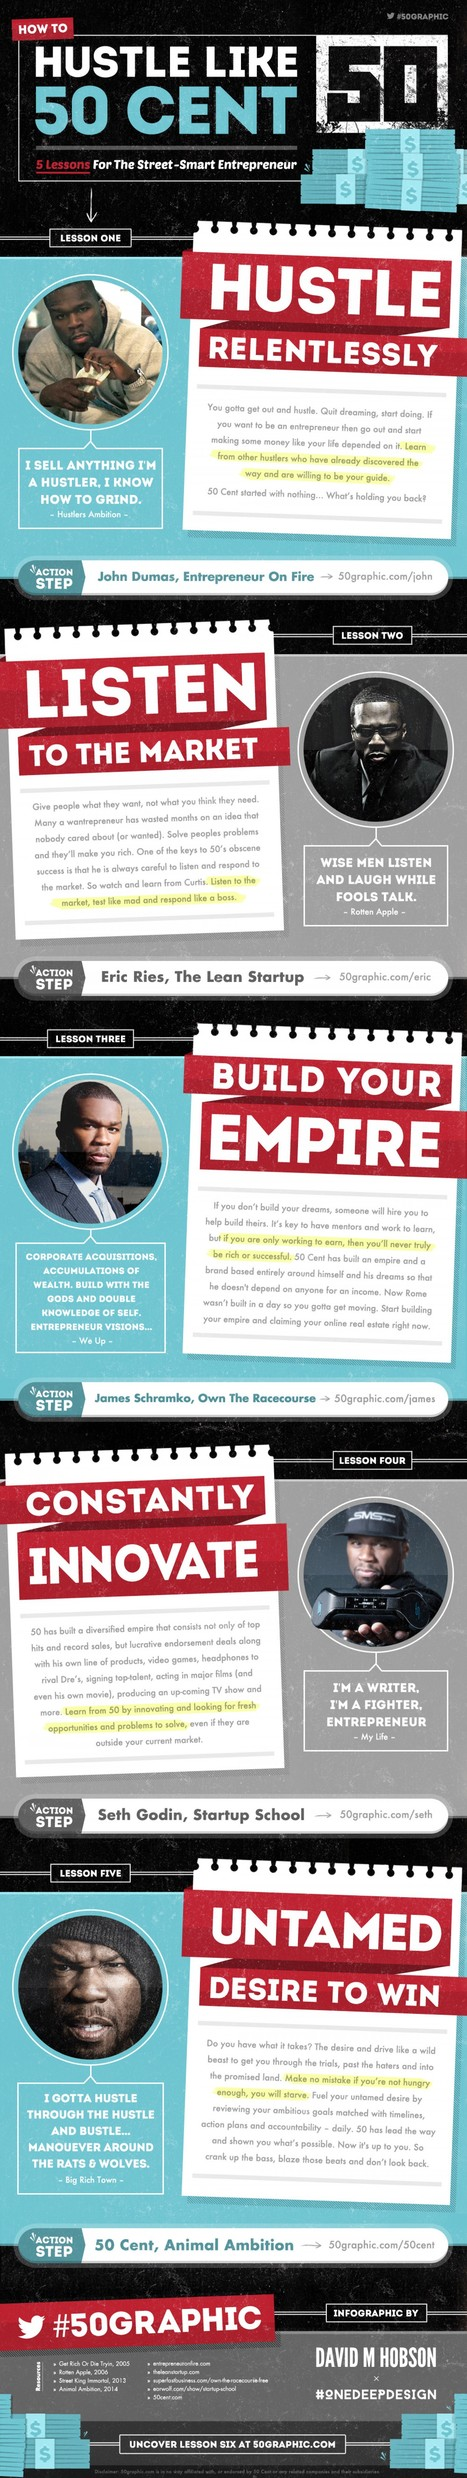 How To Hustle Like 50 Cent: 5 Lessons For Street-Smart Entrepreneurs | Visual.ly Infographic | Personal Branding Using Scoopit | Scoop.it